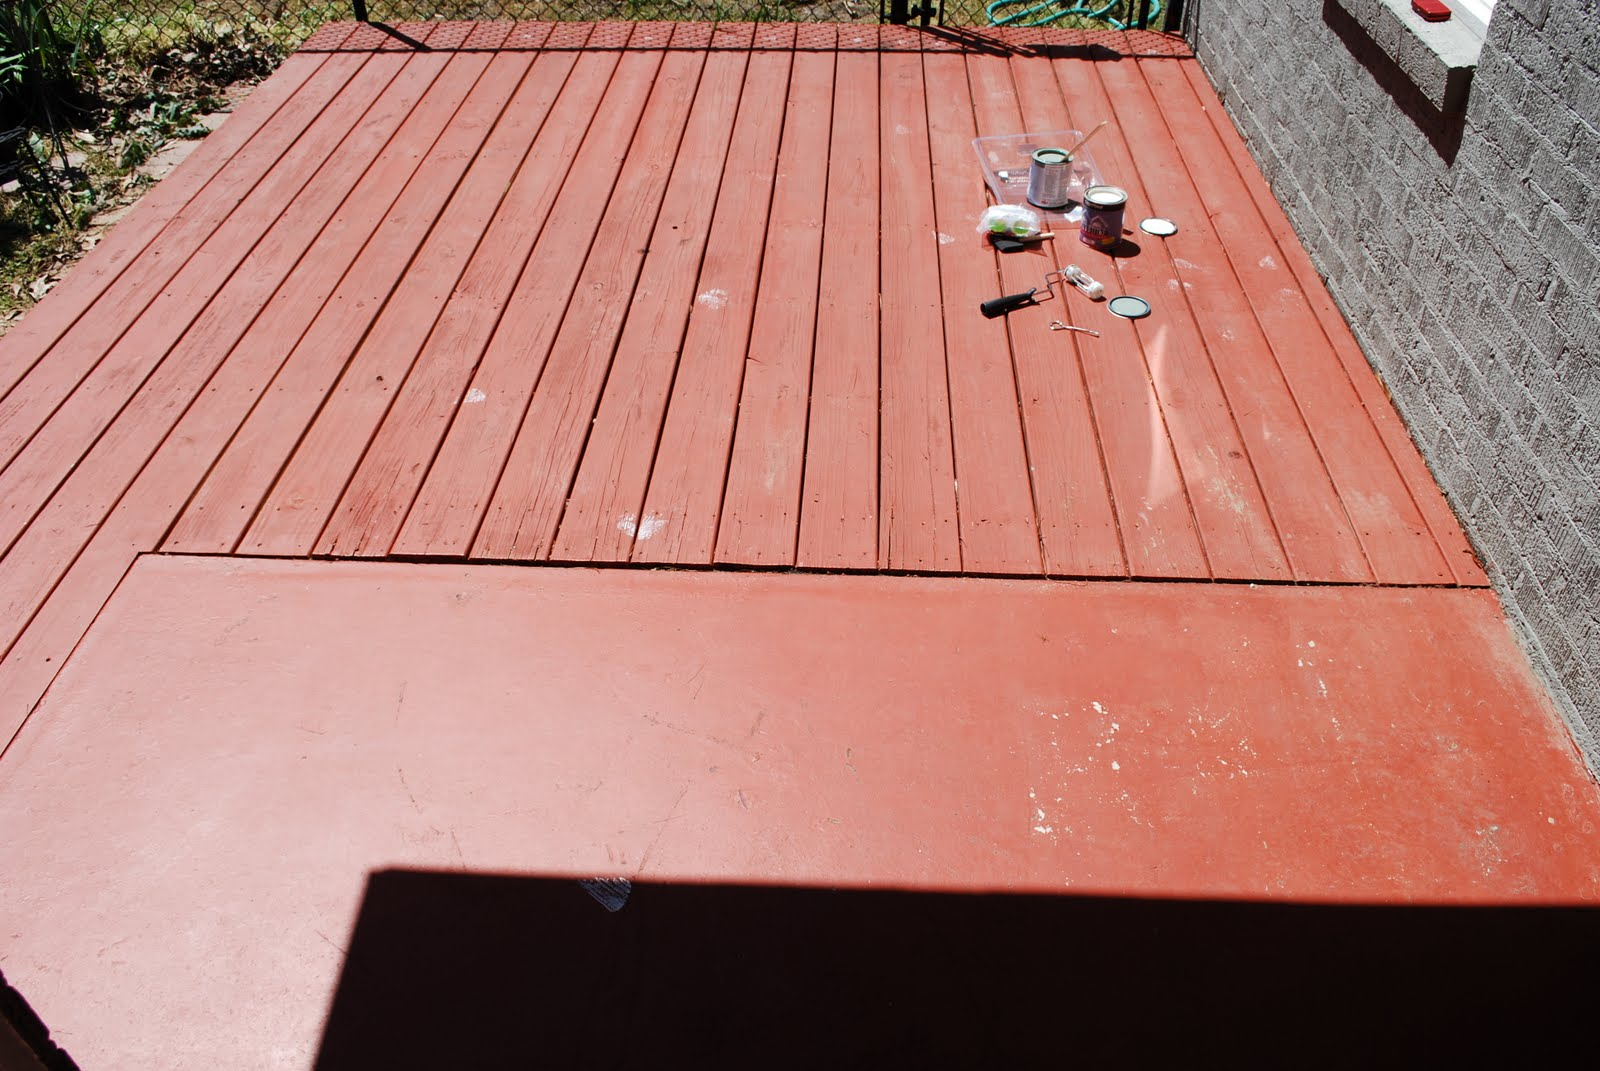 this & that: Deck Paint?